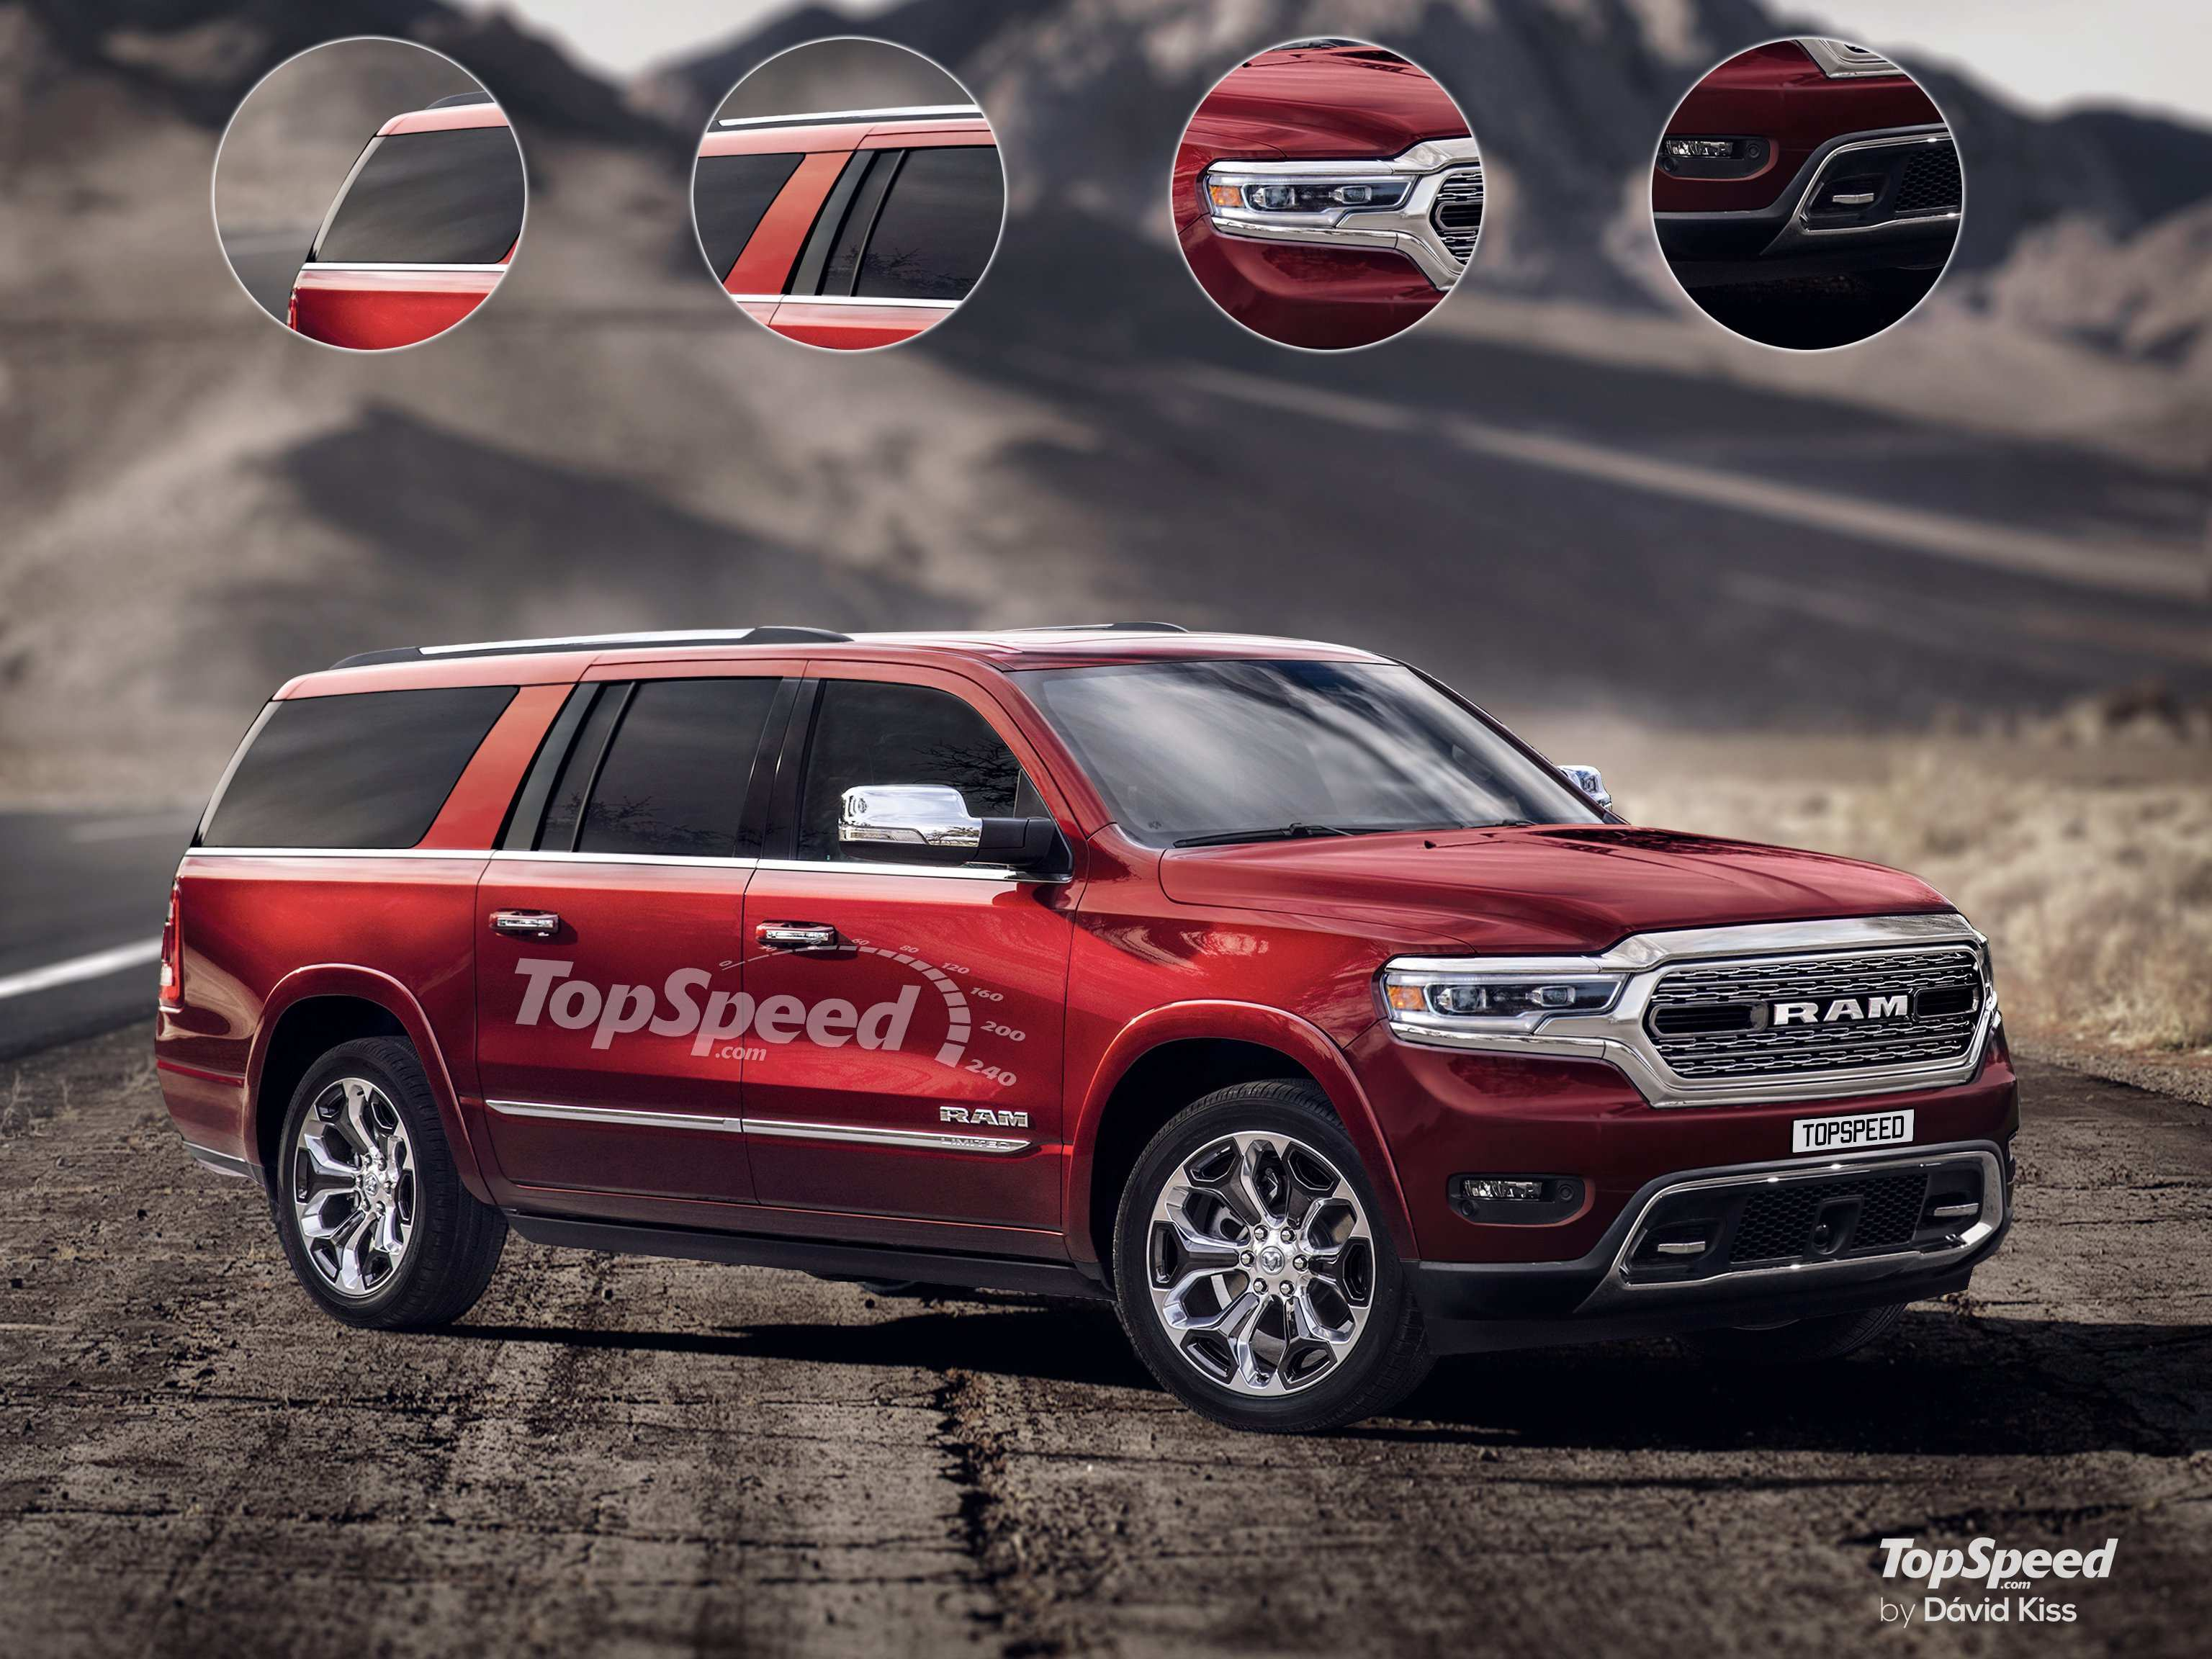 94 Gallery of 2020 Dodge Ram Truck Performance and New Engine for 2020 Dodge Ram Truck